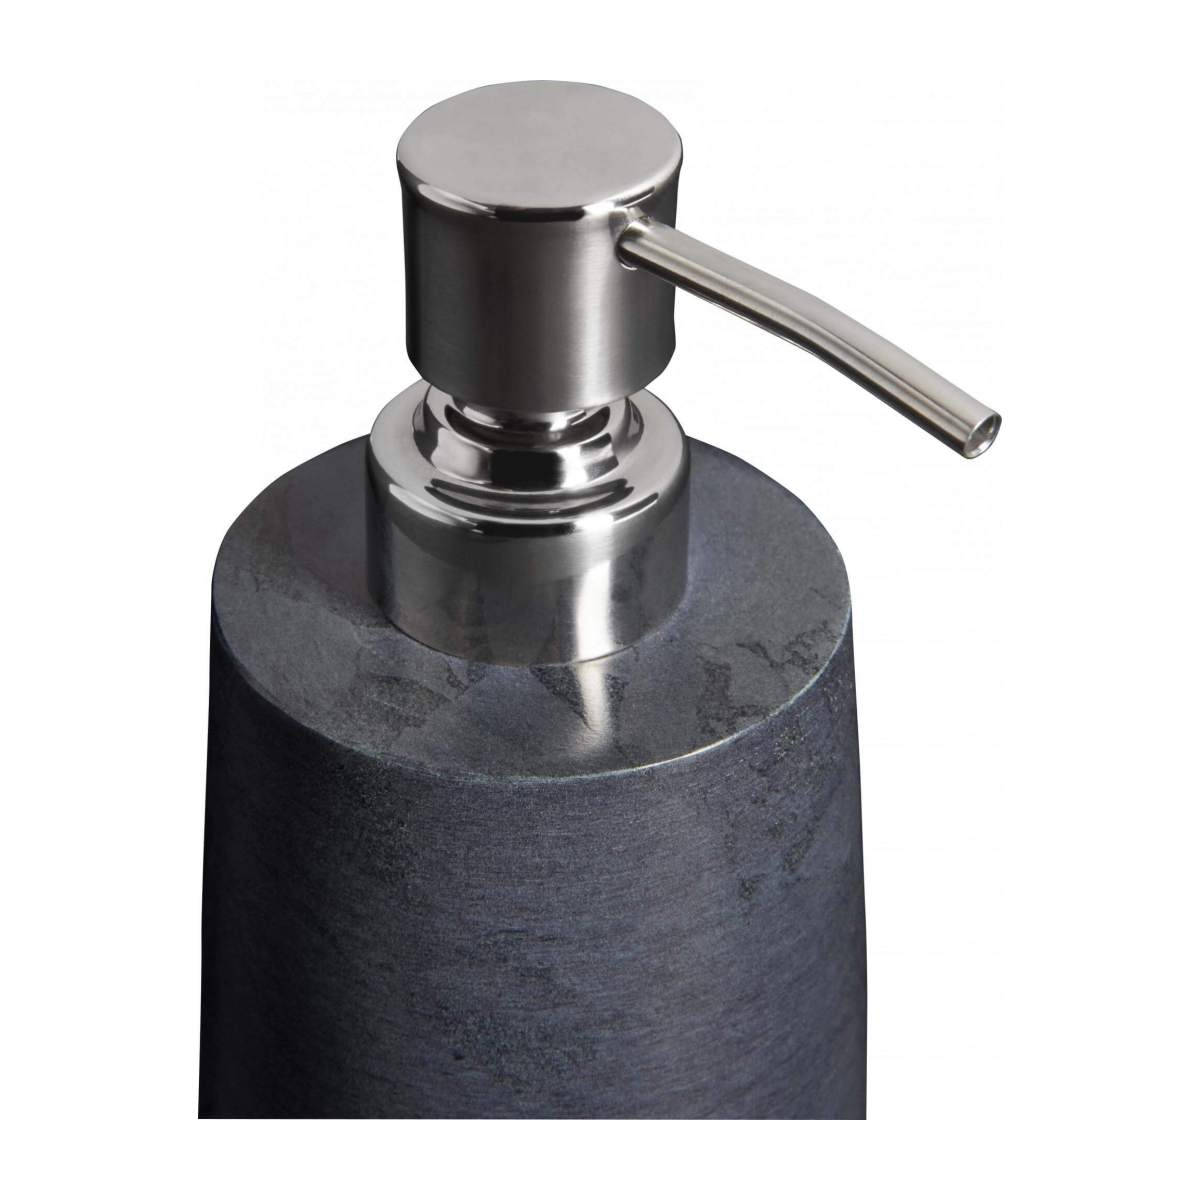 Grey soapstone soap dispenser n°4